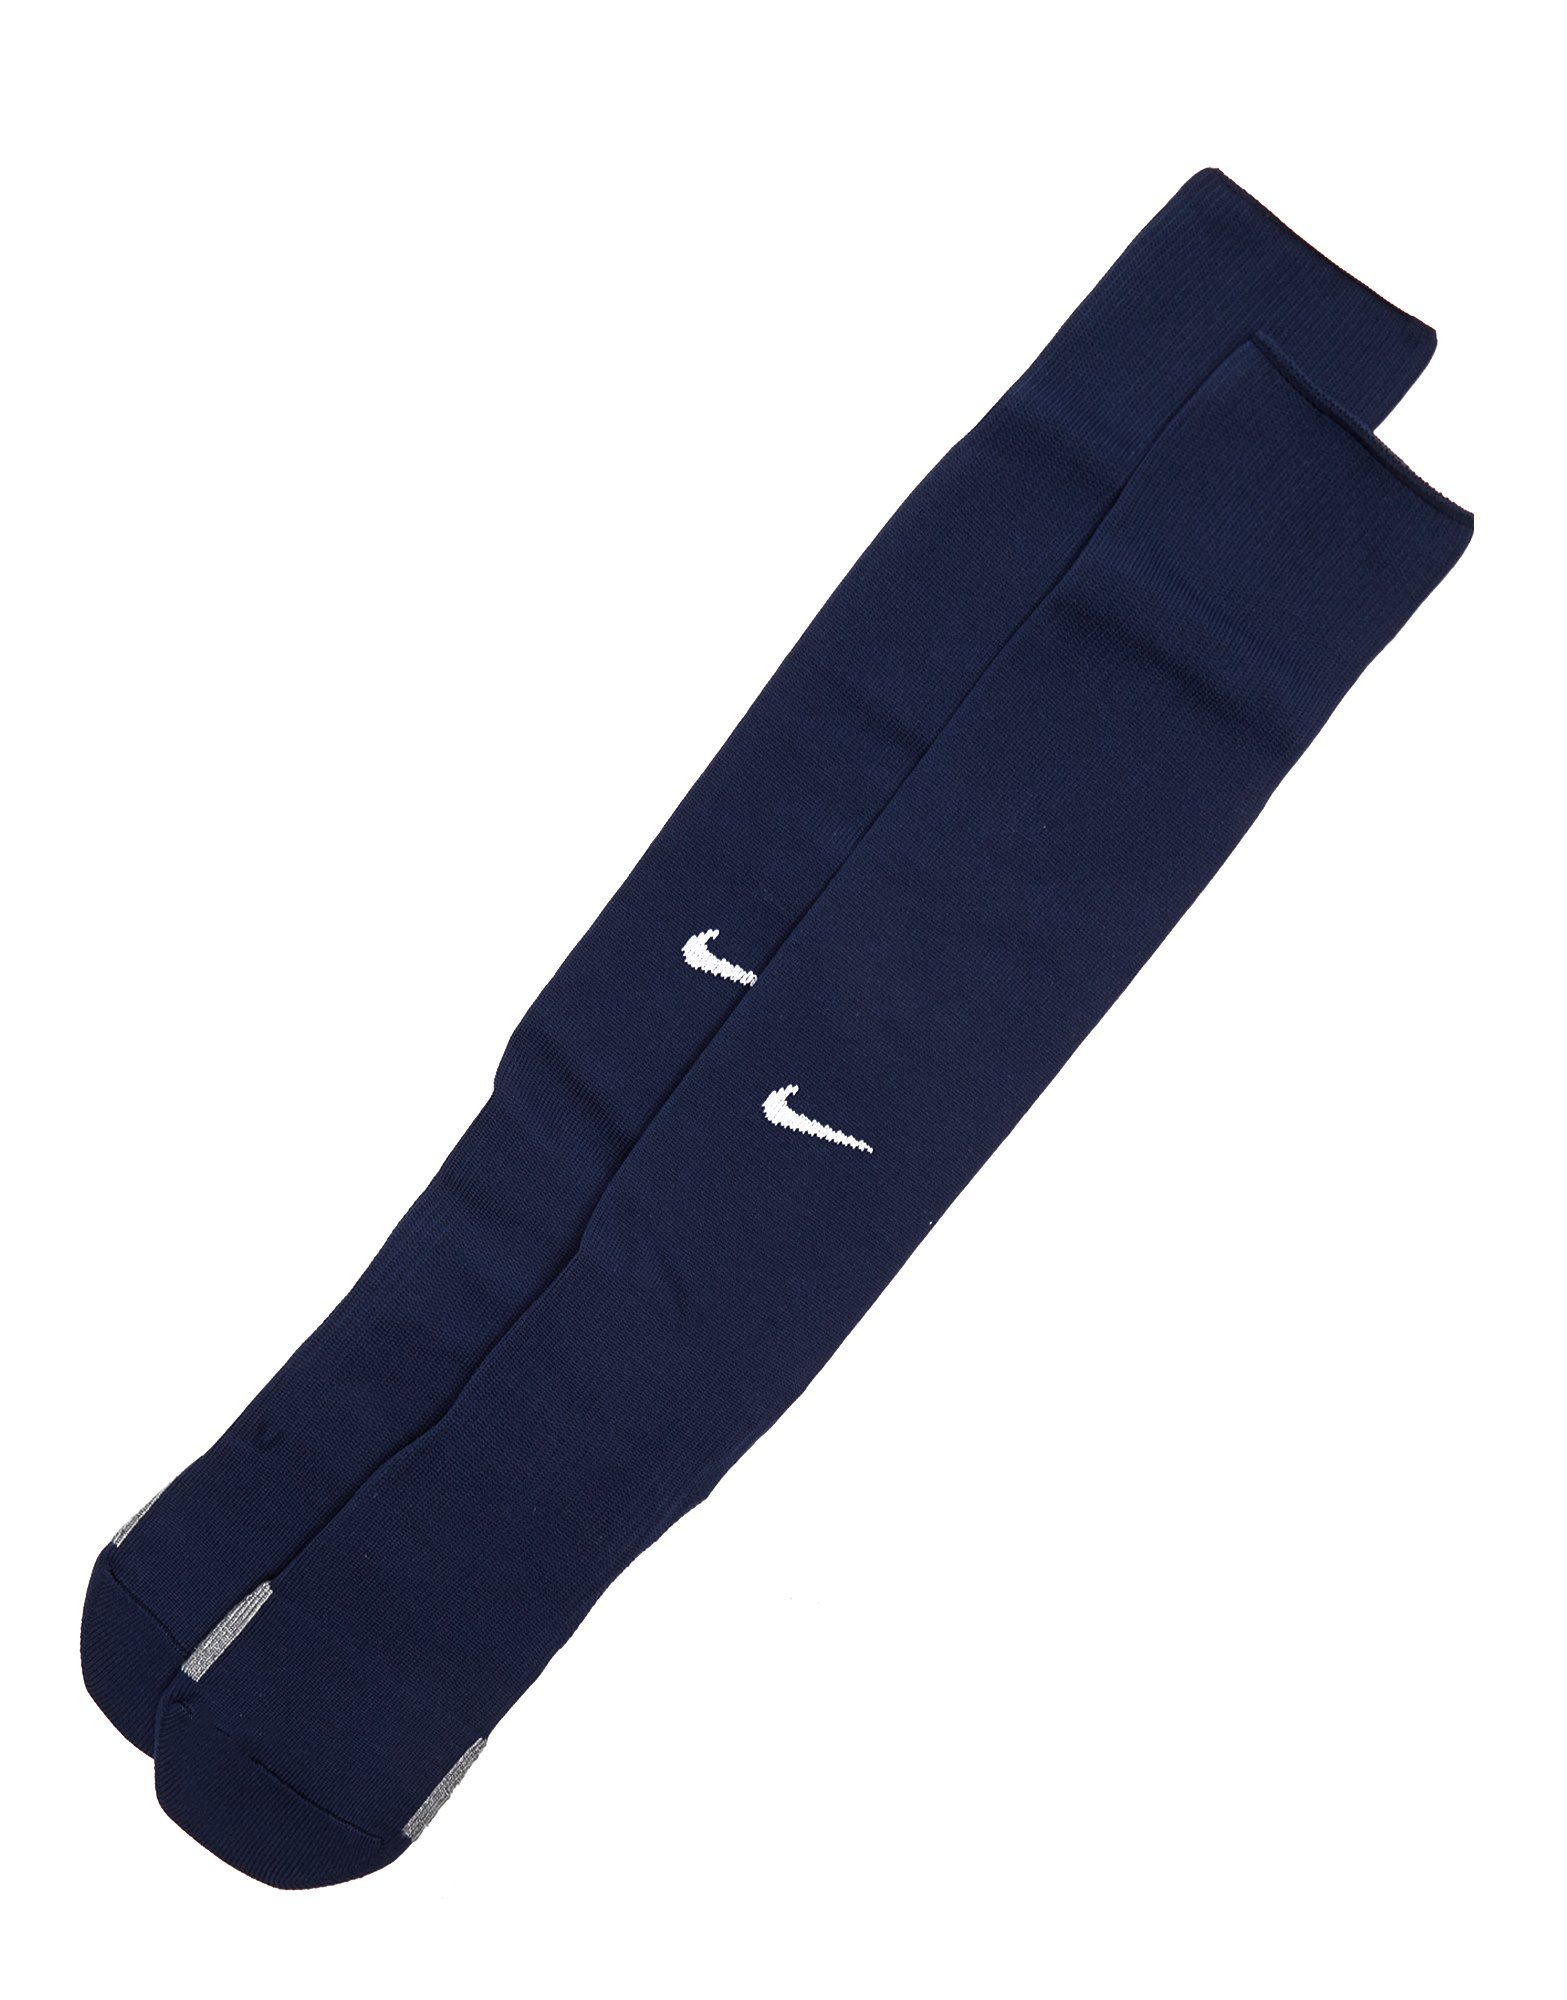 Nike Park IV Football Socks